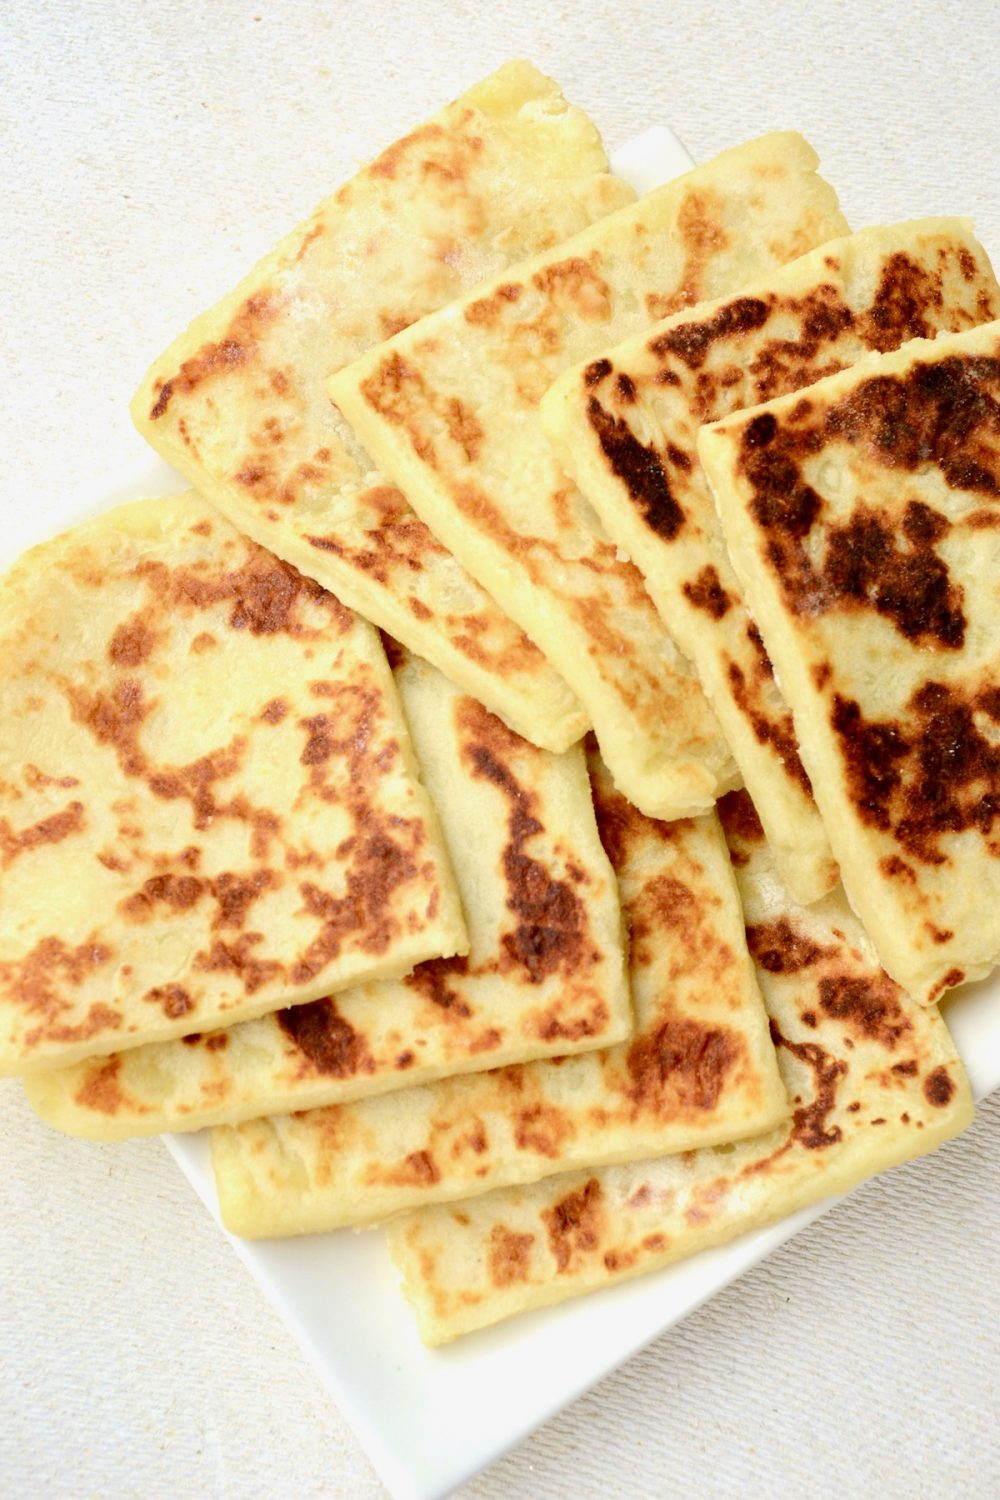 Potato scones beautifully arranged like fallen dominoes in two lines on a white plate.